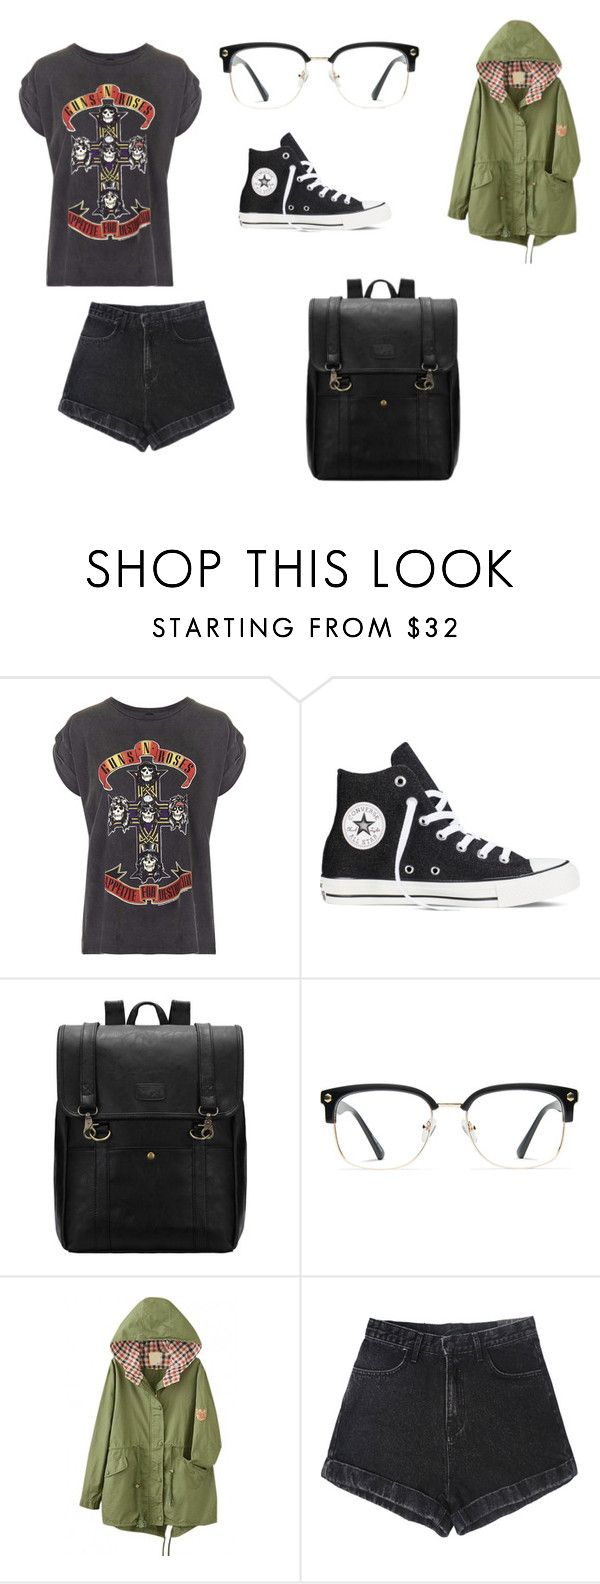 """Guns N Roses"" by tbass2201 on Polyvore featuring Topshop, Converse, GlassesUSA, women's clothing, women, female, woman, misses and juniors"